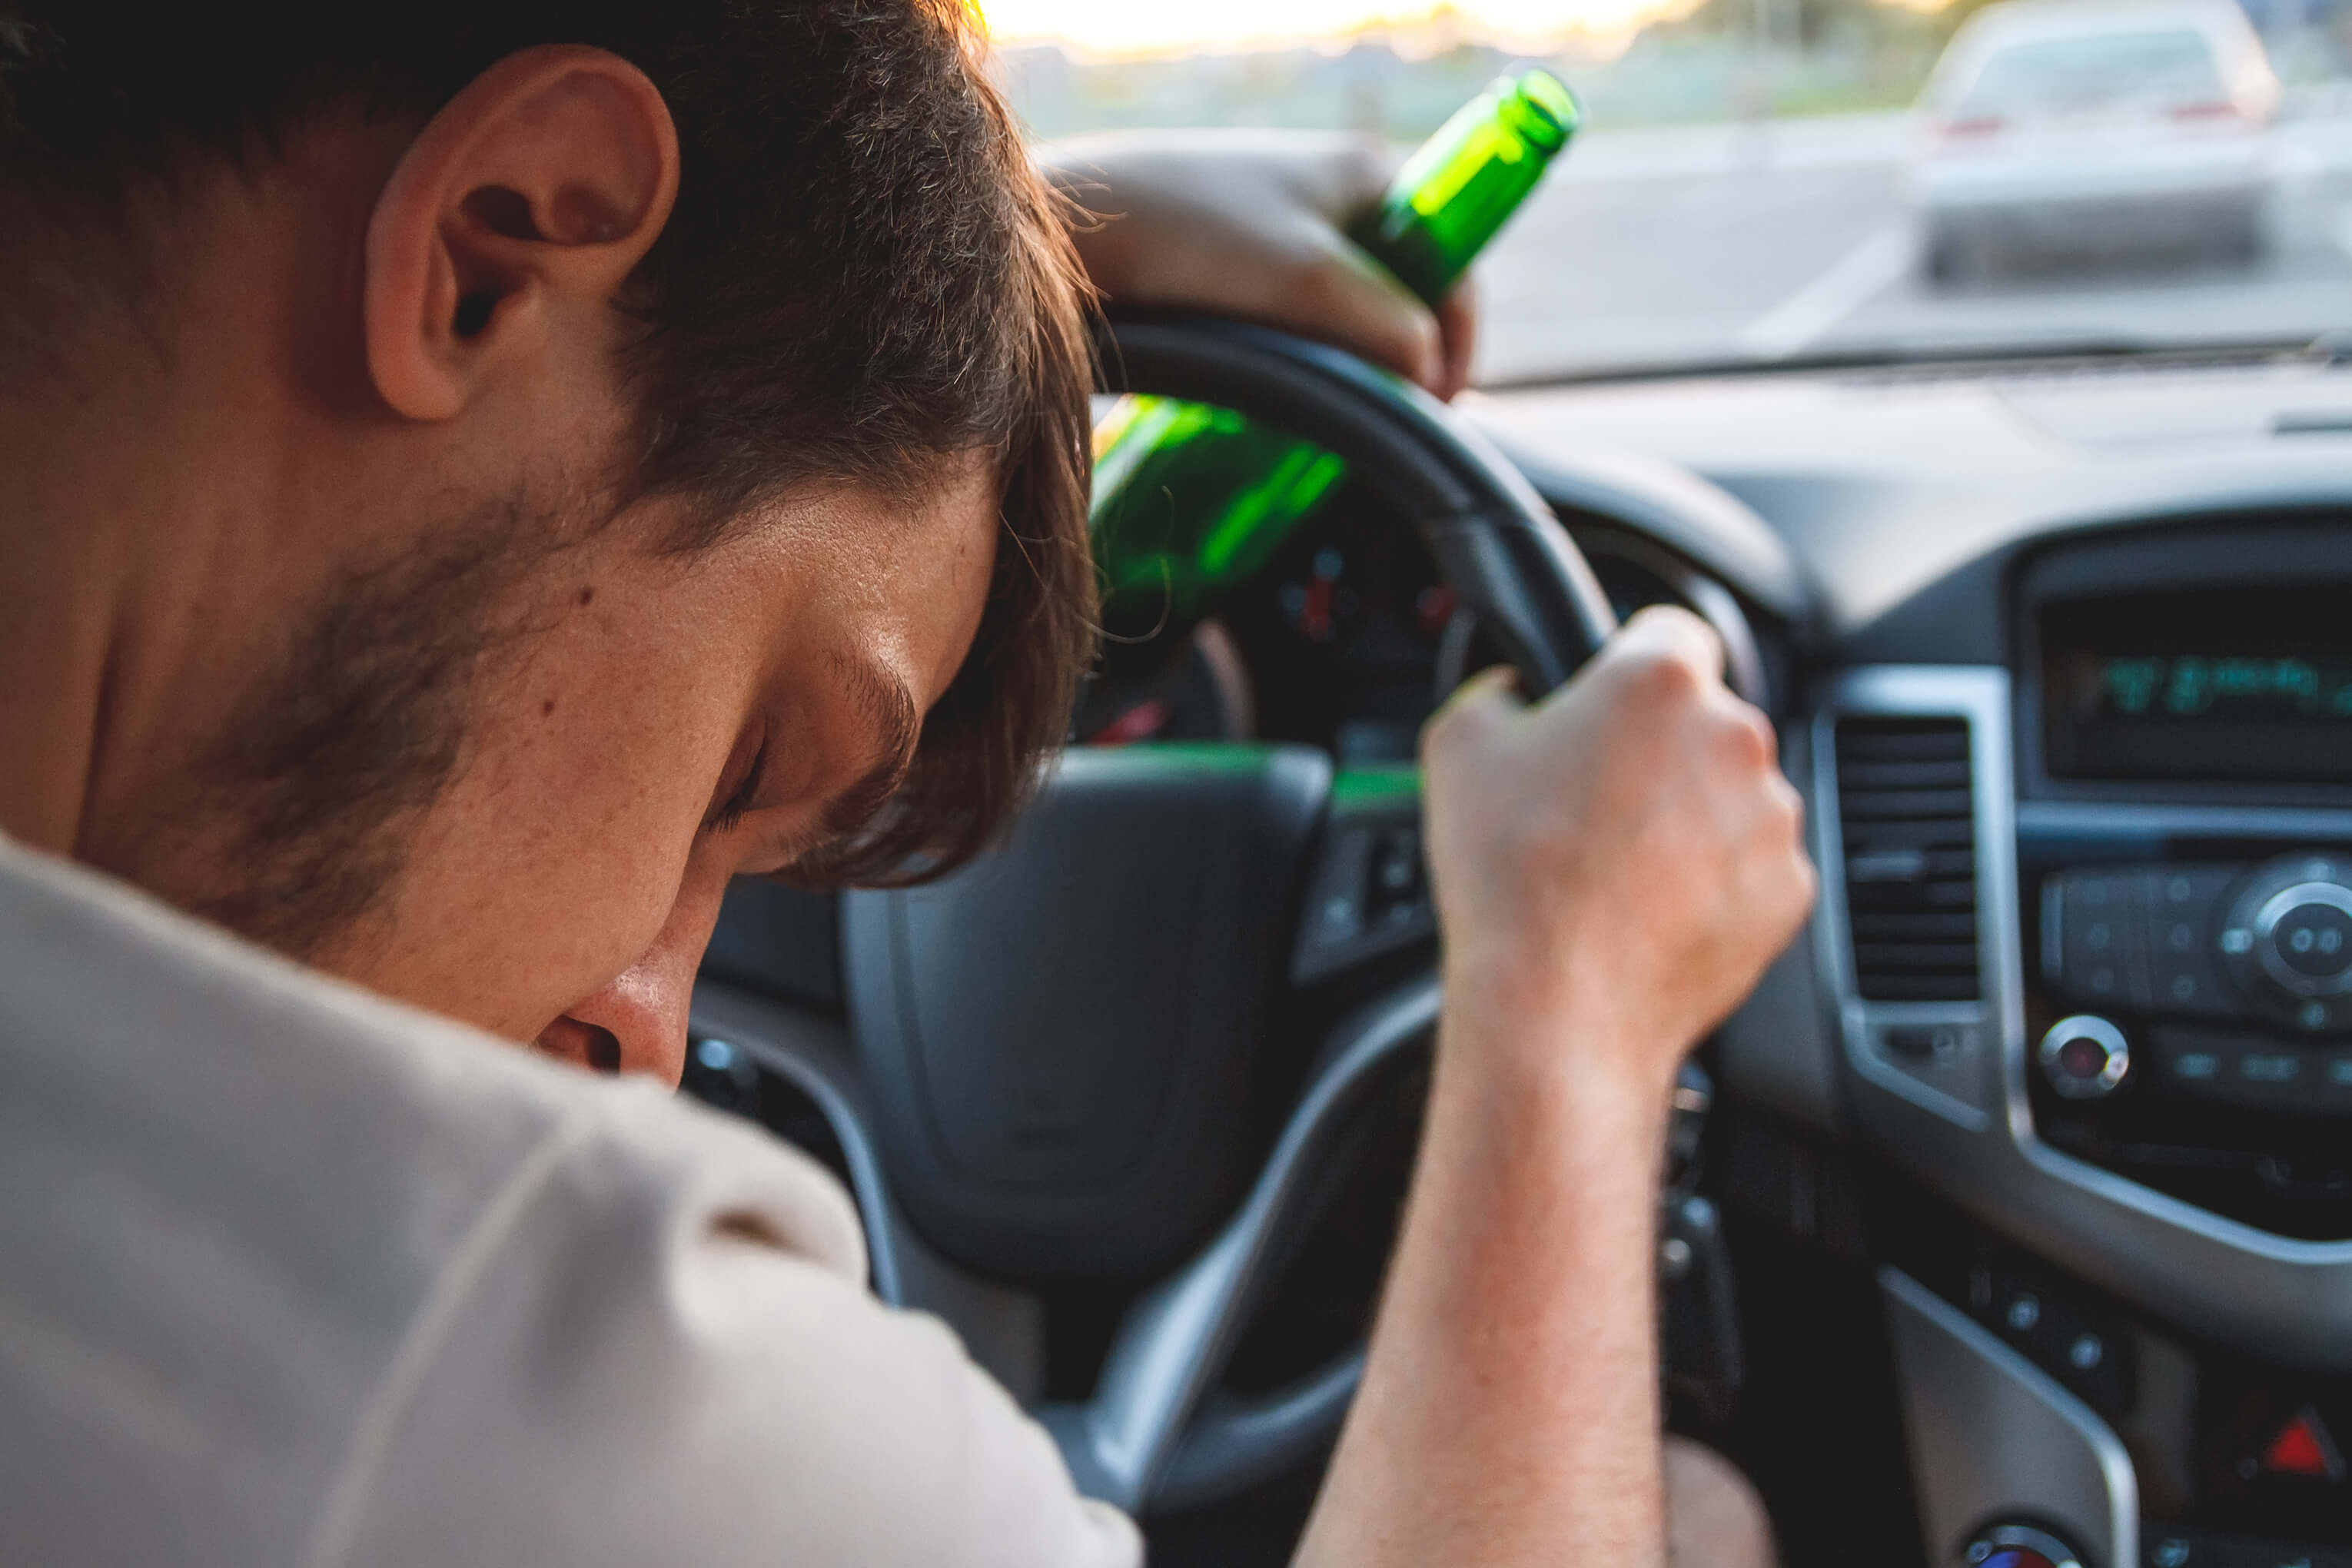 Man passed out with alcohol in the car - Massachusetts DUI attorneys